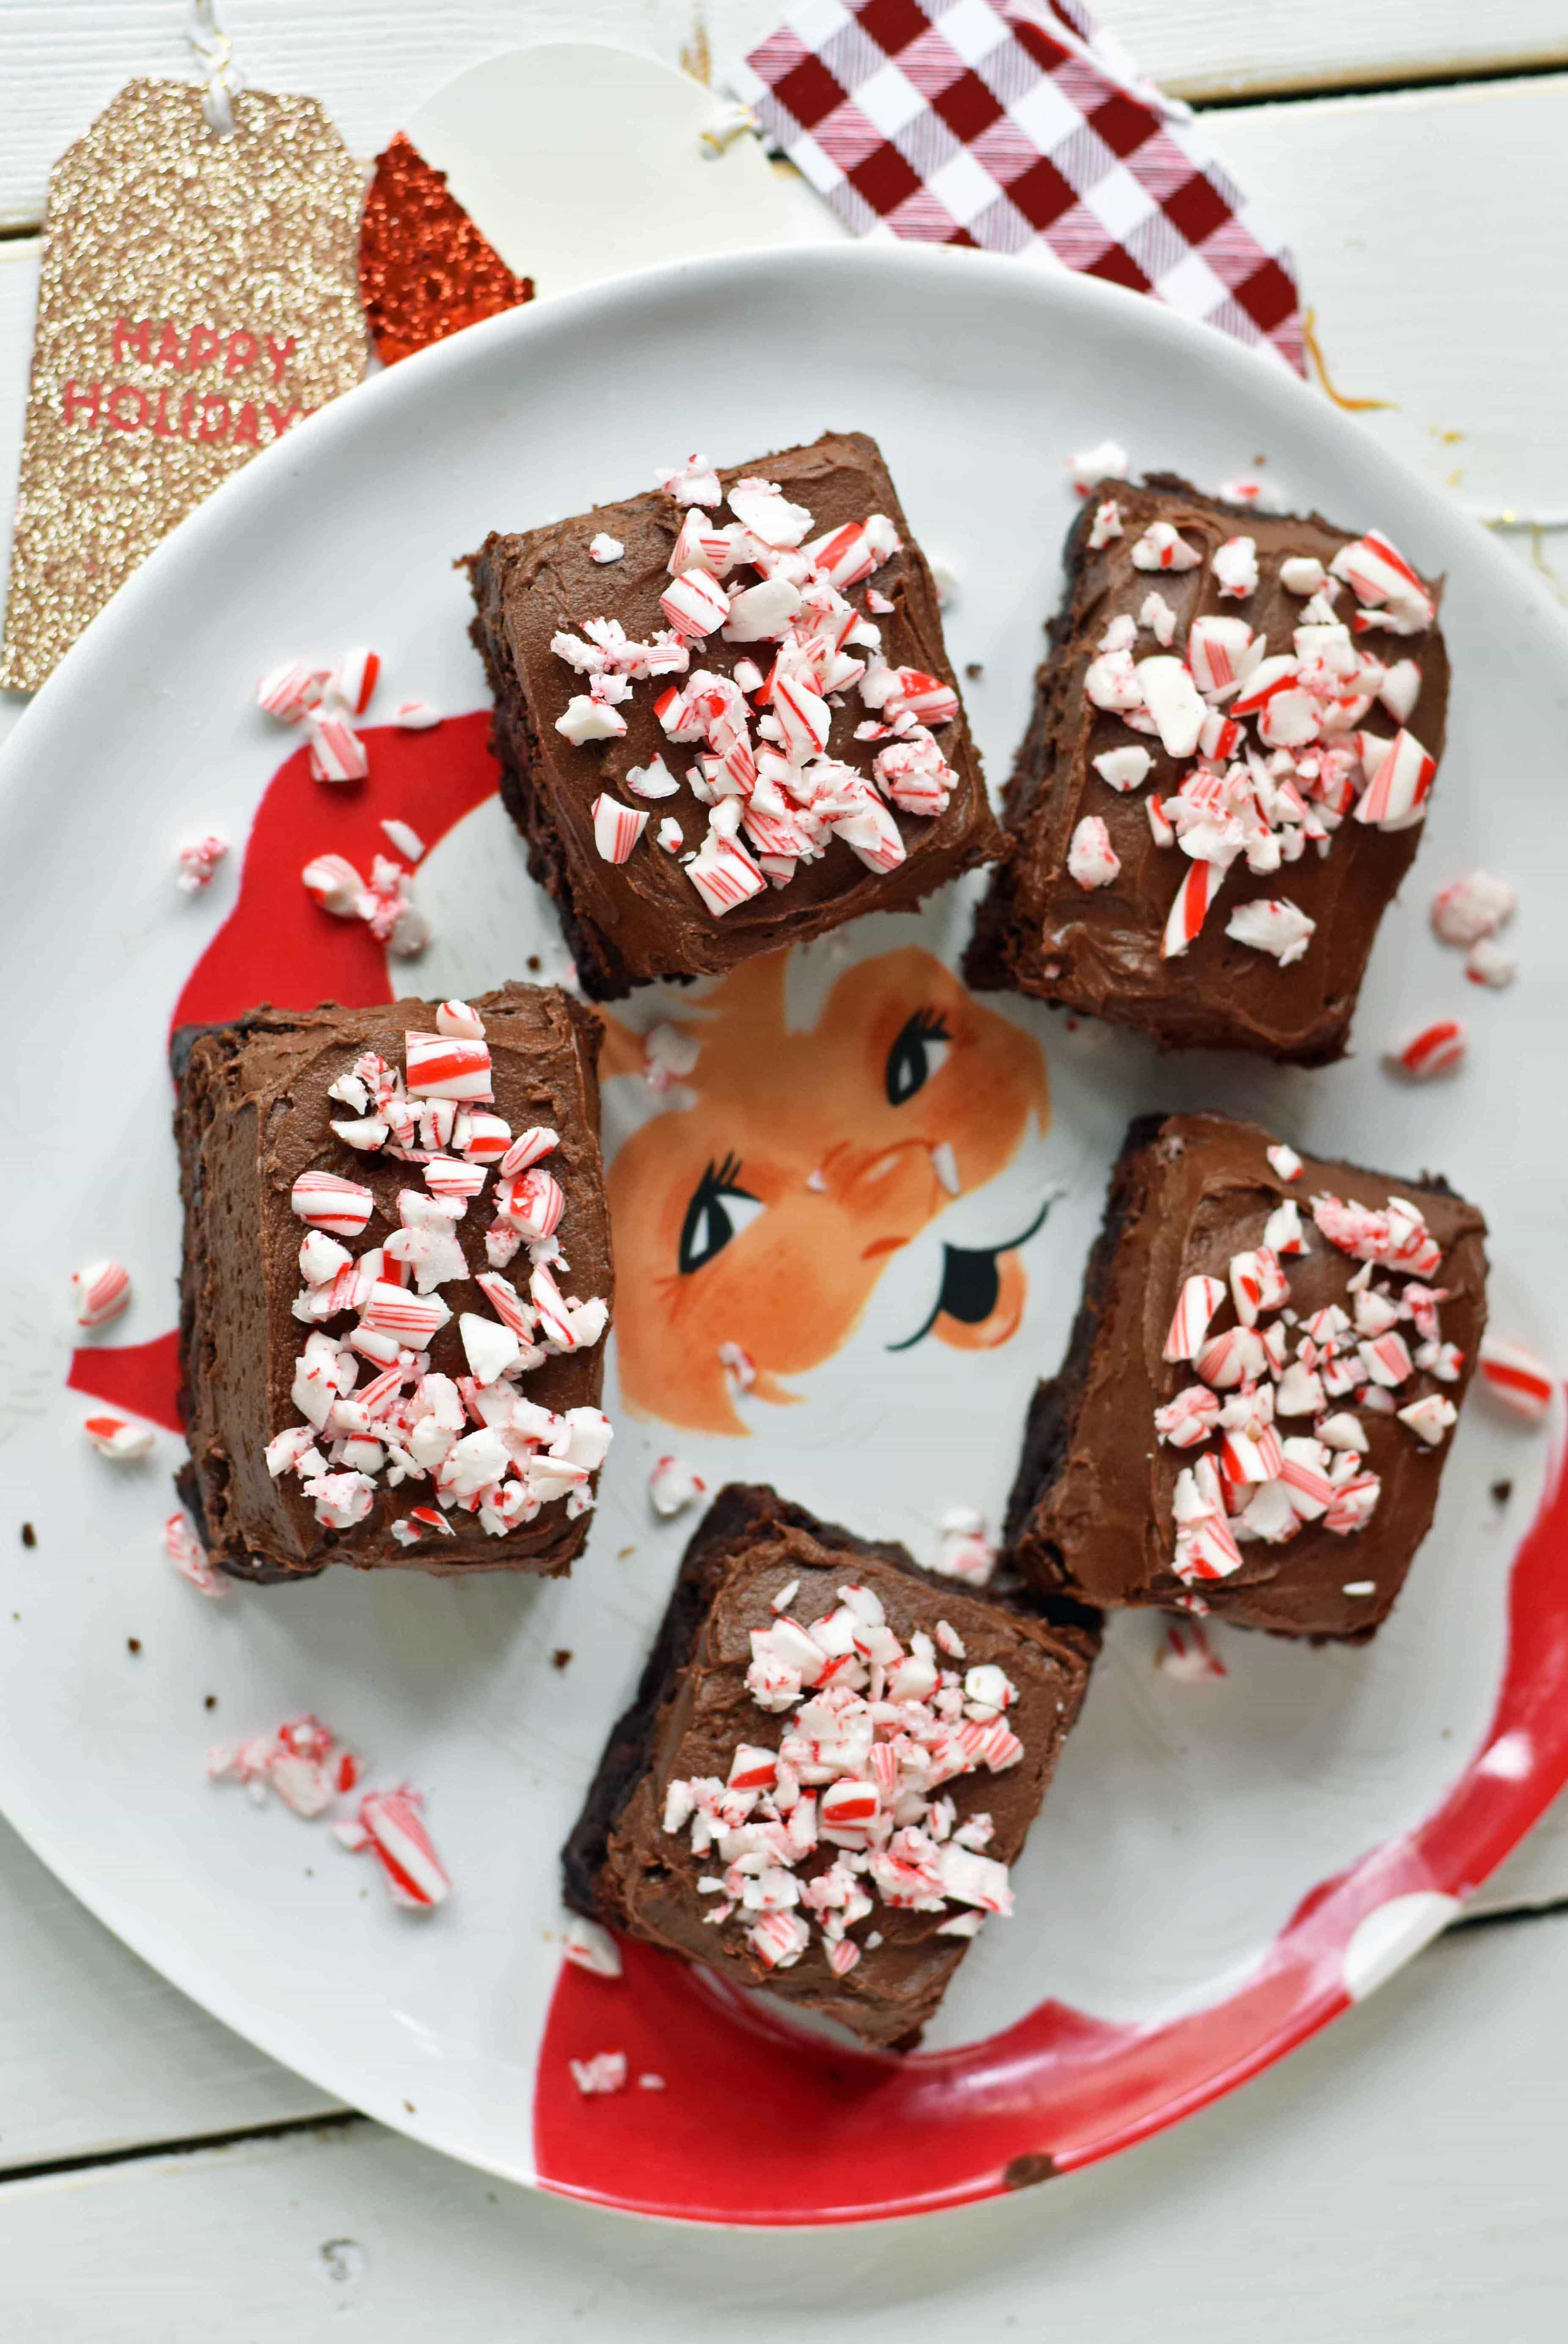 Peppermint Frosted Chocolate Brownies. Rich decadent chewy chocolate brownies topped with homemade silky smooth chocolate frosting and topped with candy canes. A chocolate frosted brownie with candy canes. www.modernhoney.com